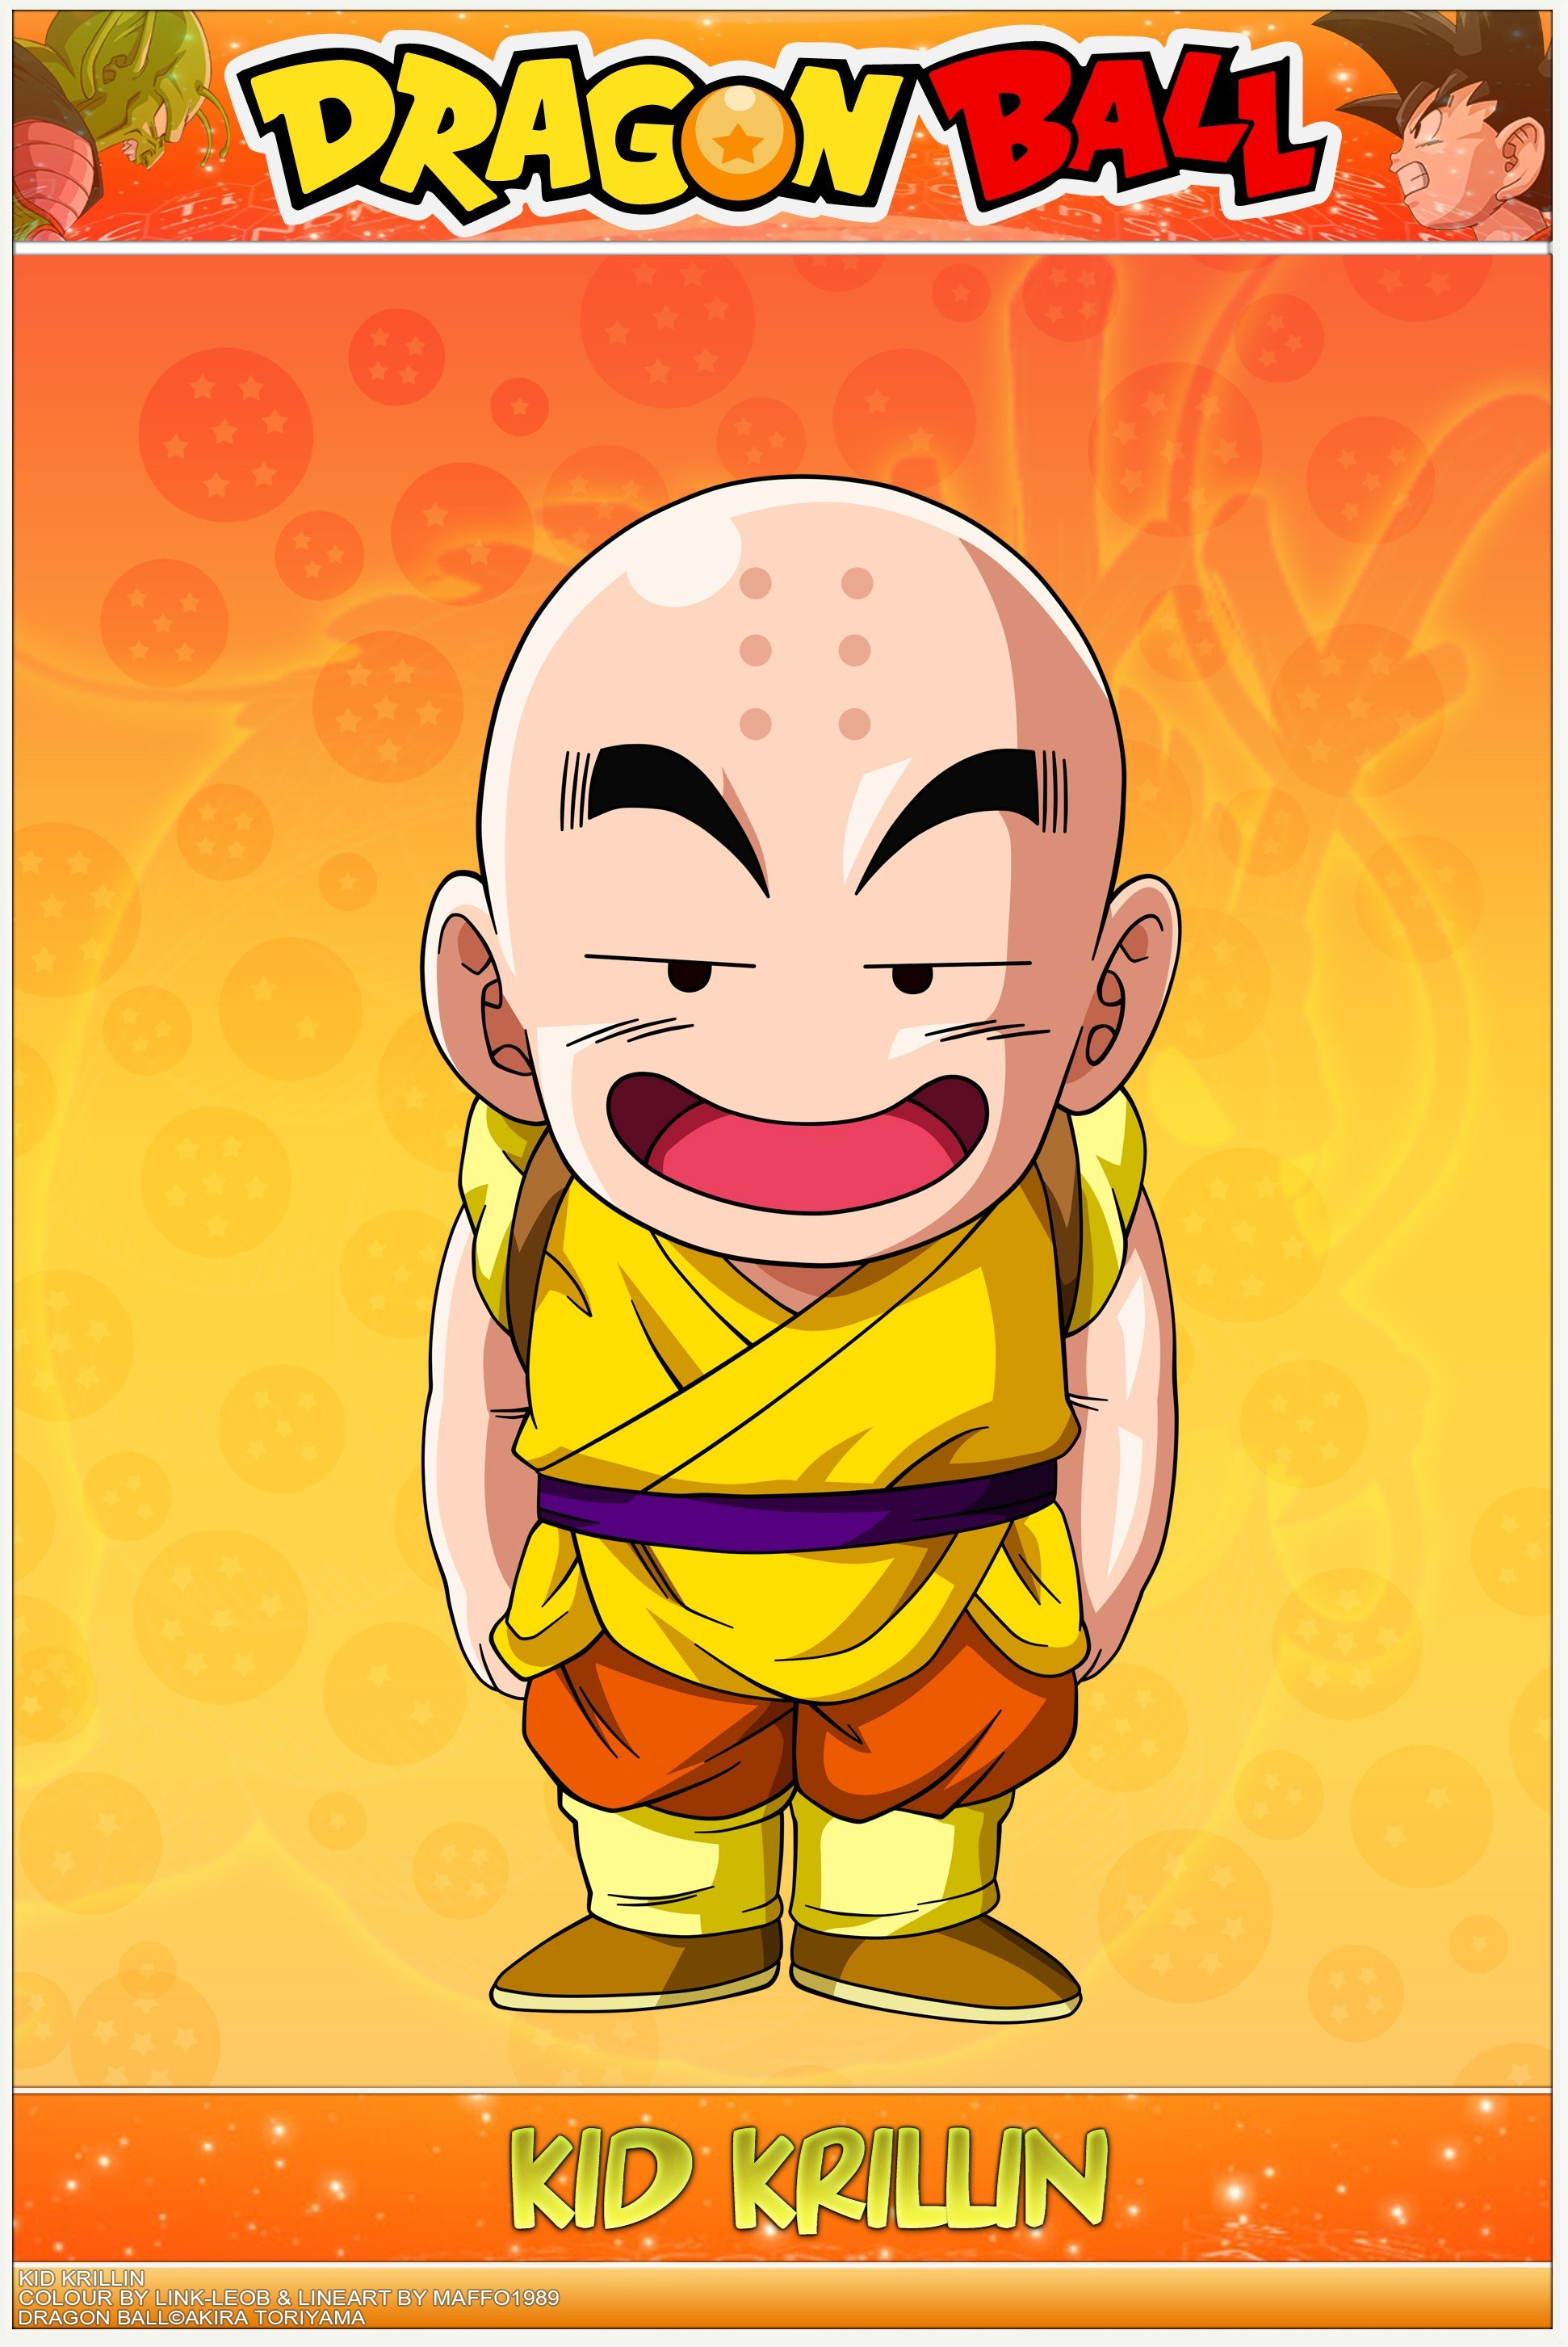 Dragon Ball Krillin wallpaper 1942x2906 309174 1942x2906